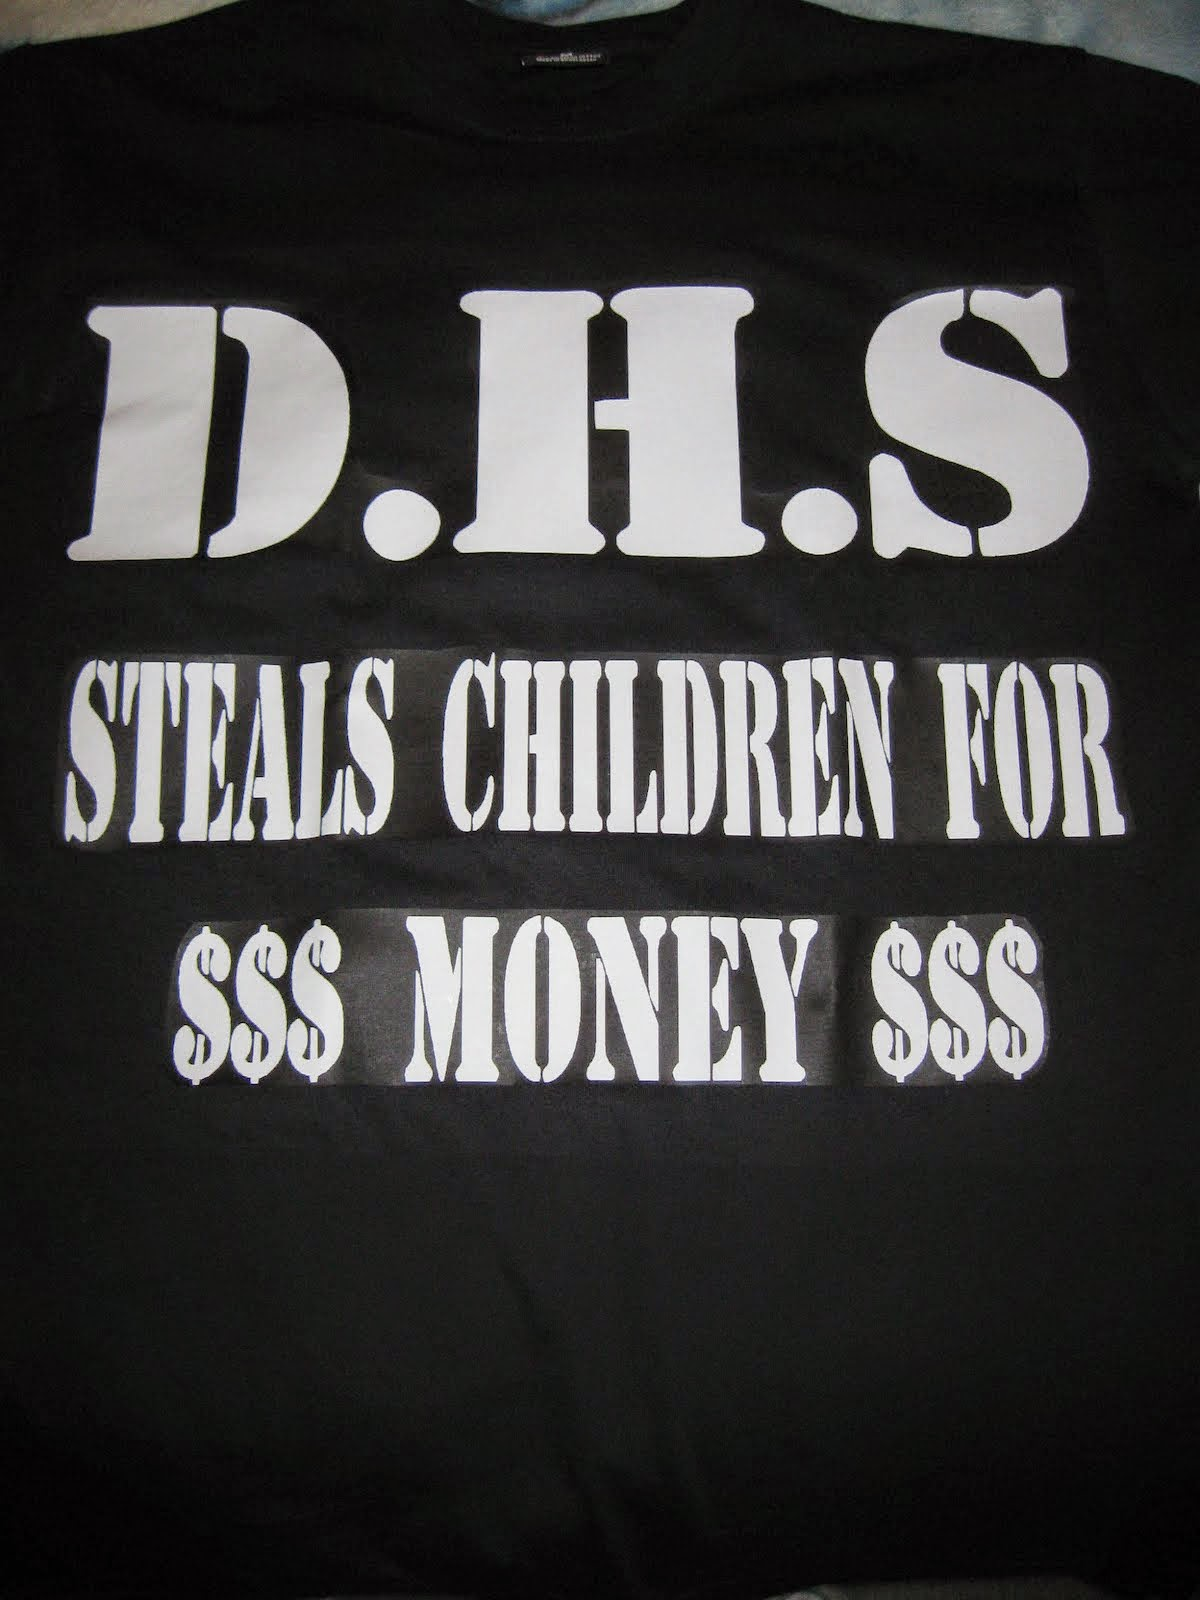 DHS Steals